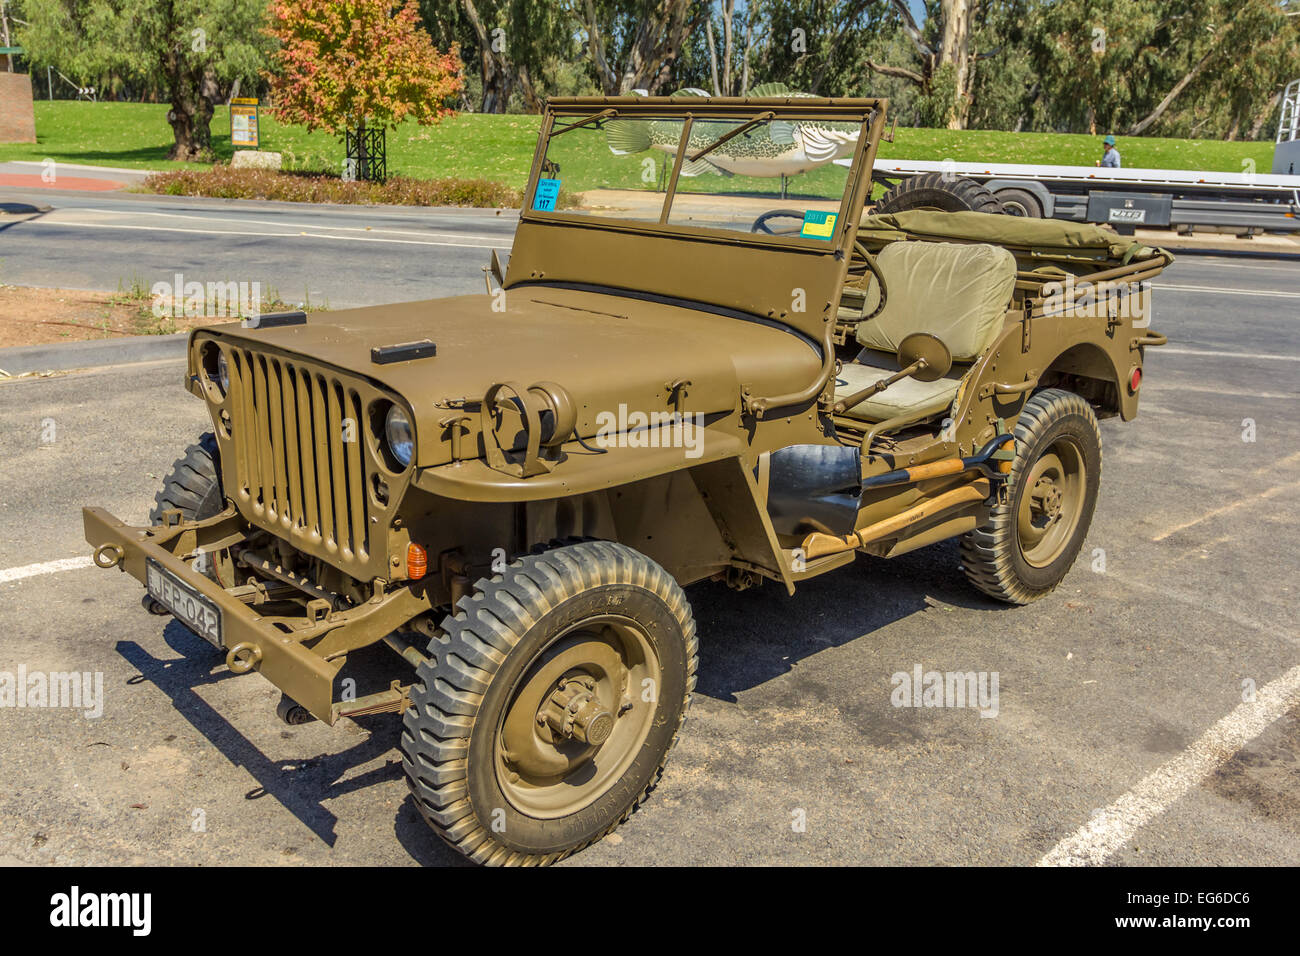 Iconic Army Jeep Stock Photos Images Alamy Willys Jeeps On Filter Box Ww2 Restored Image